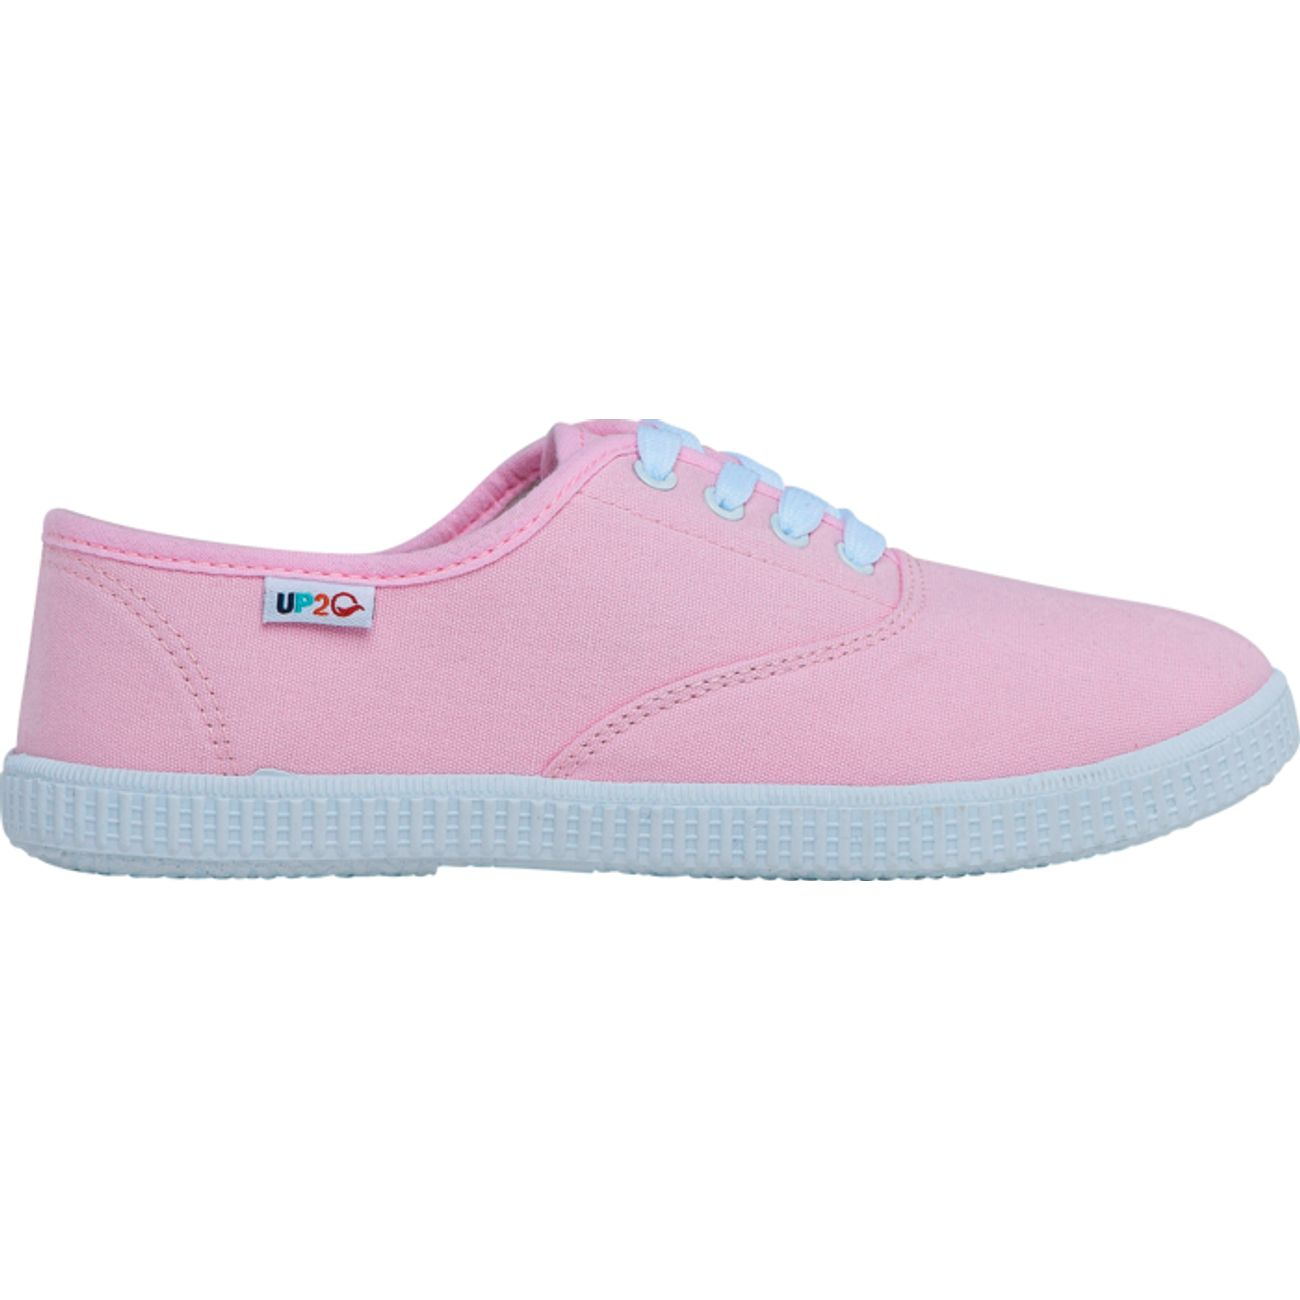 Chaussures WRose Basses Femme Loisirs Up2glide Toile ulc3JT5FK1